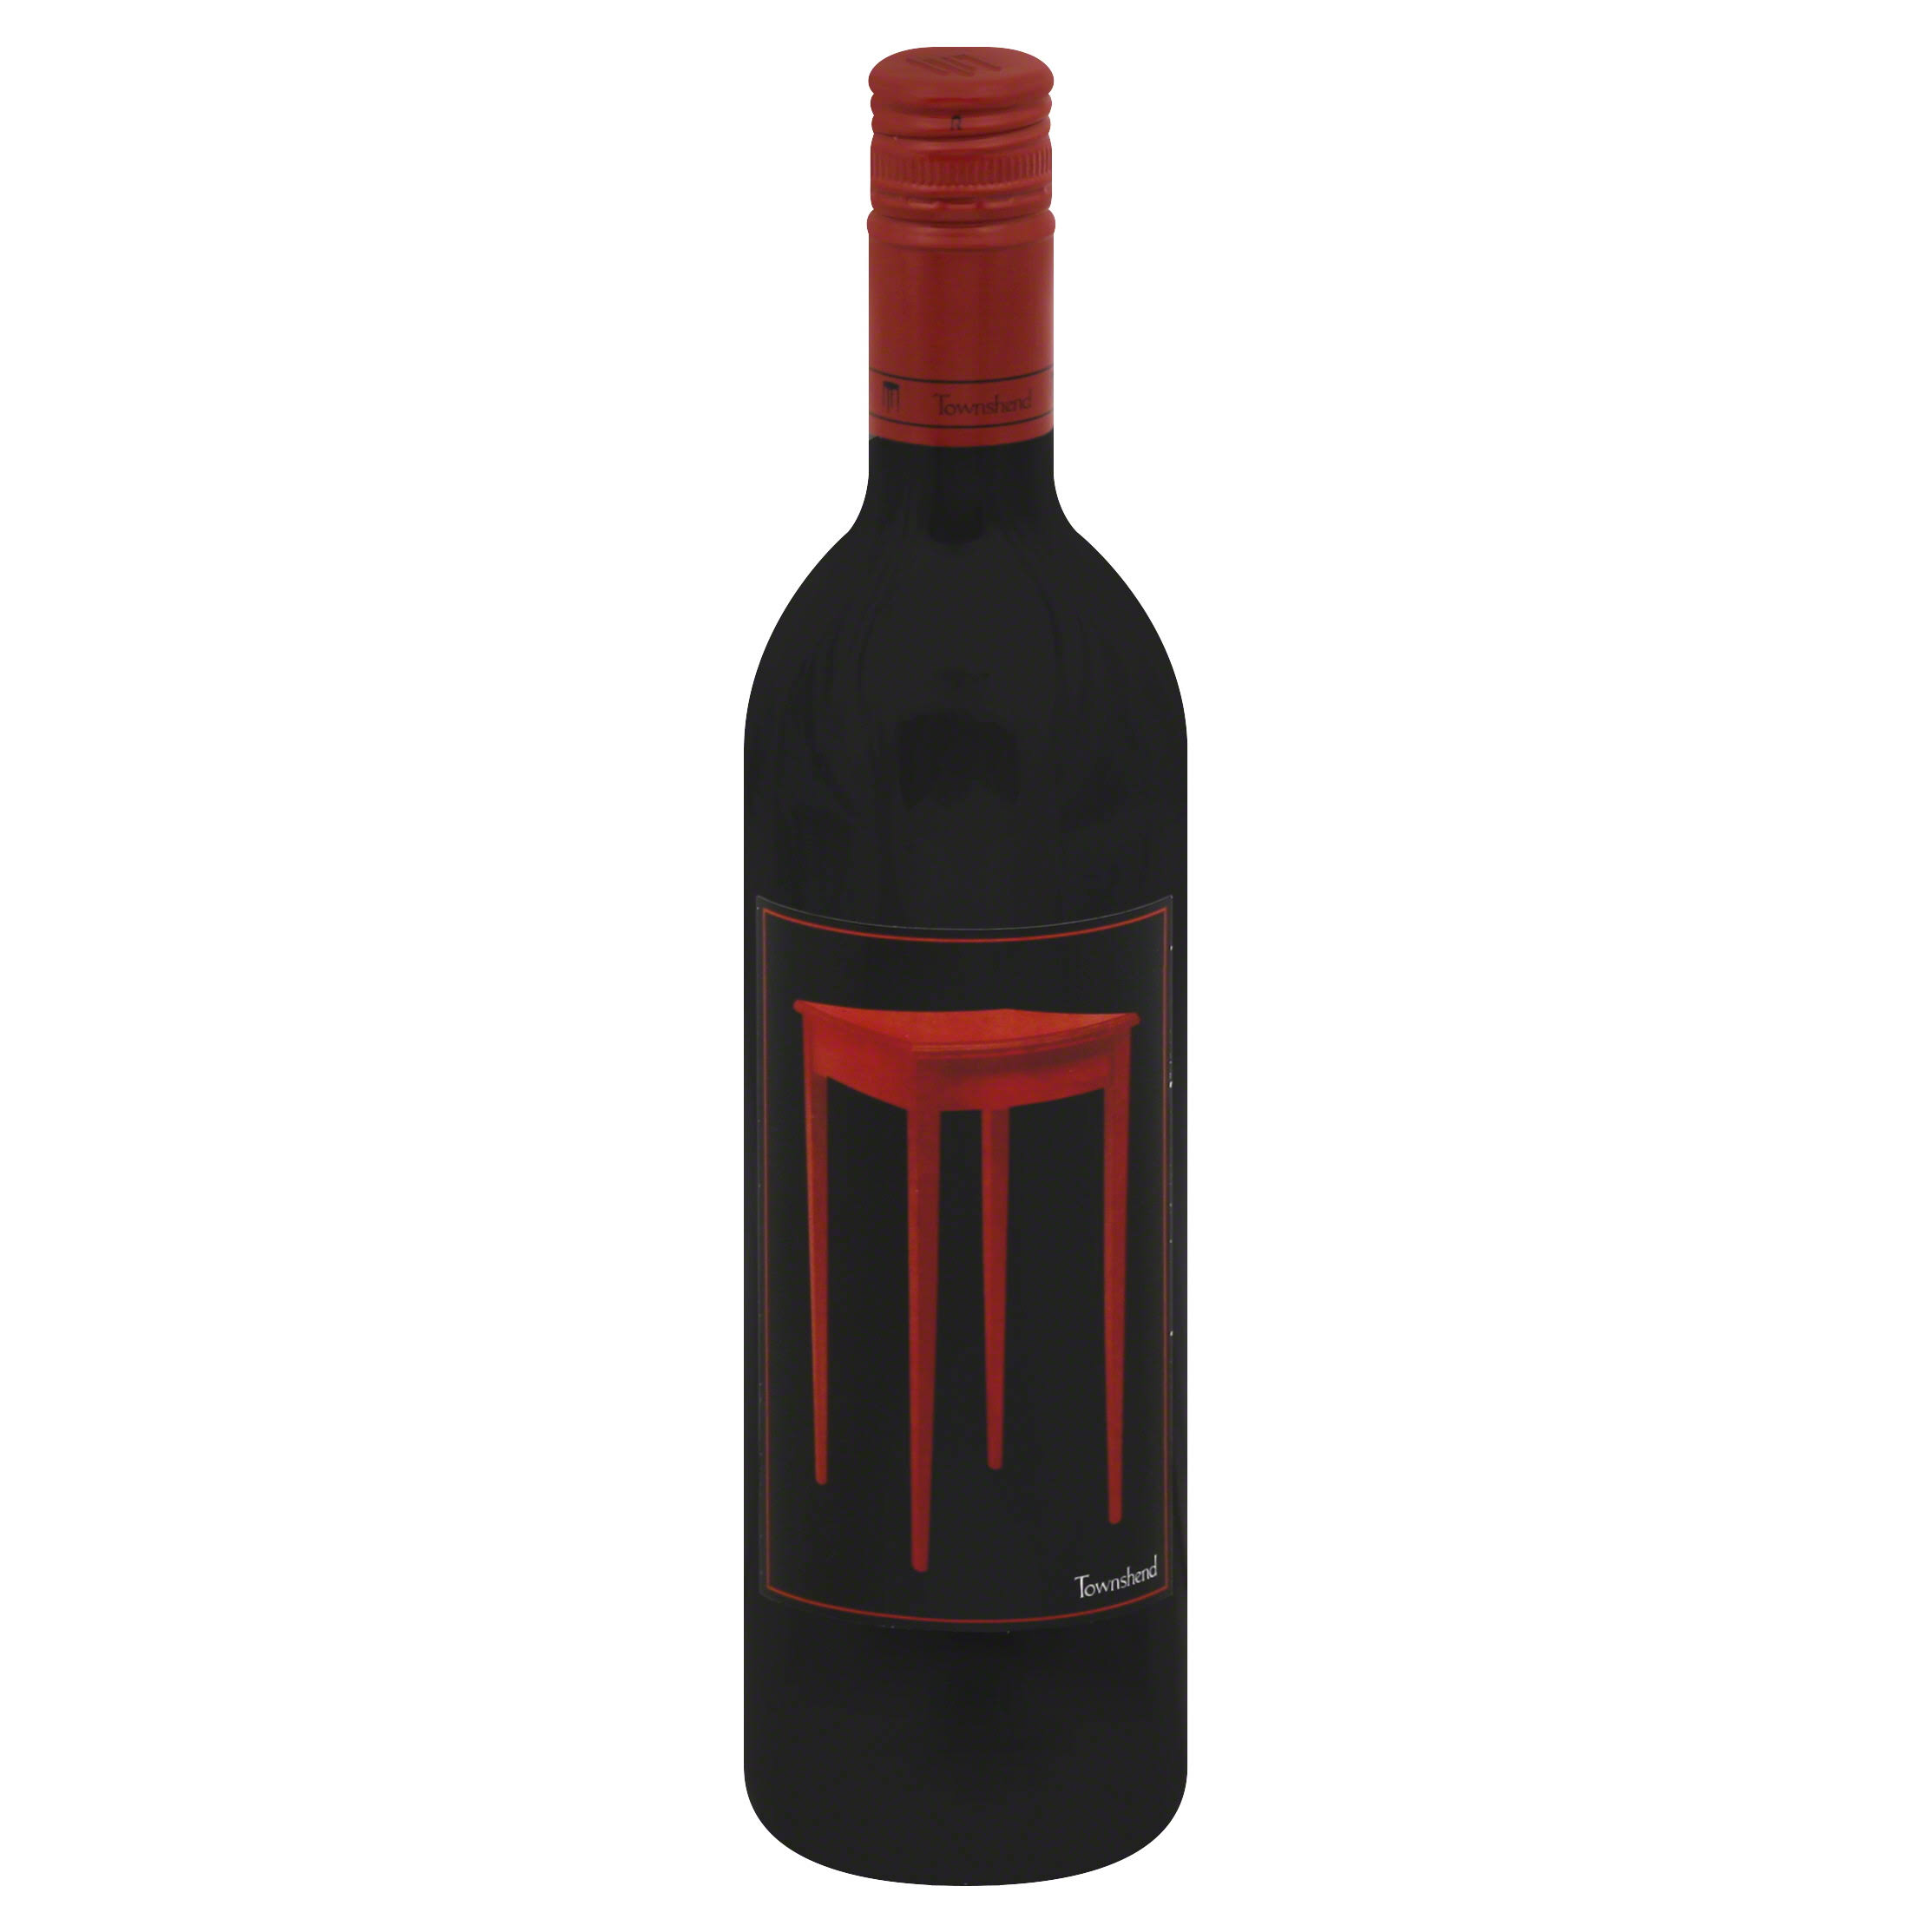 Townshend Red Table Wine, Columbia Valley - 750 ml